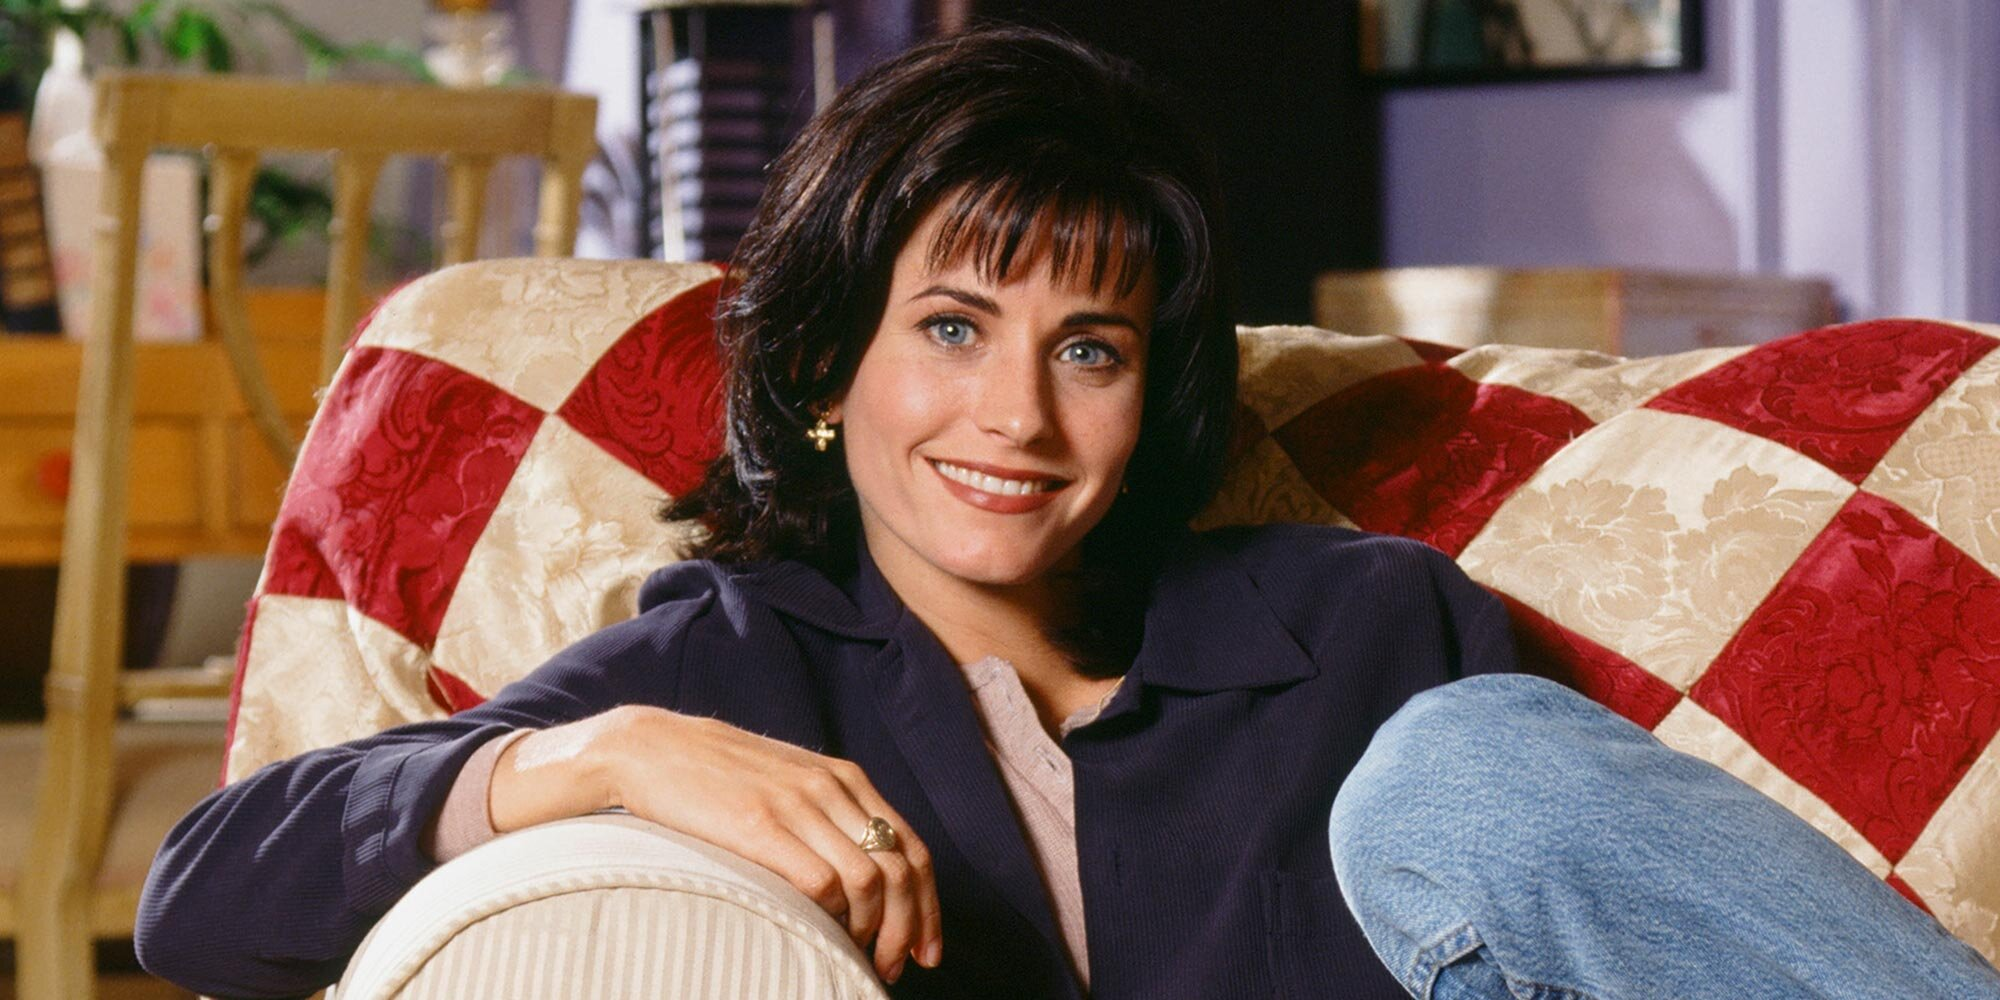 'Friends' star Courteney Cox shows why she's a total Monica IRL